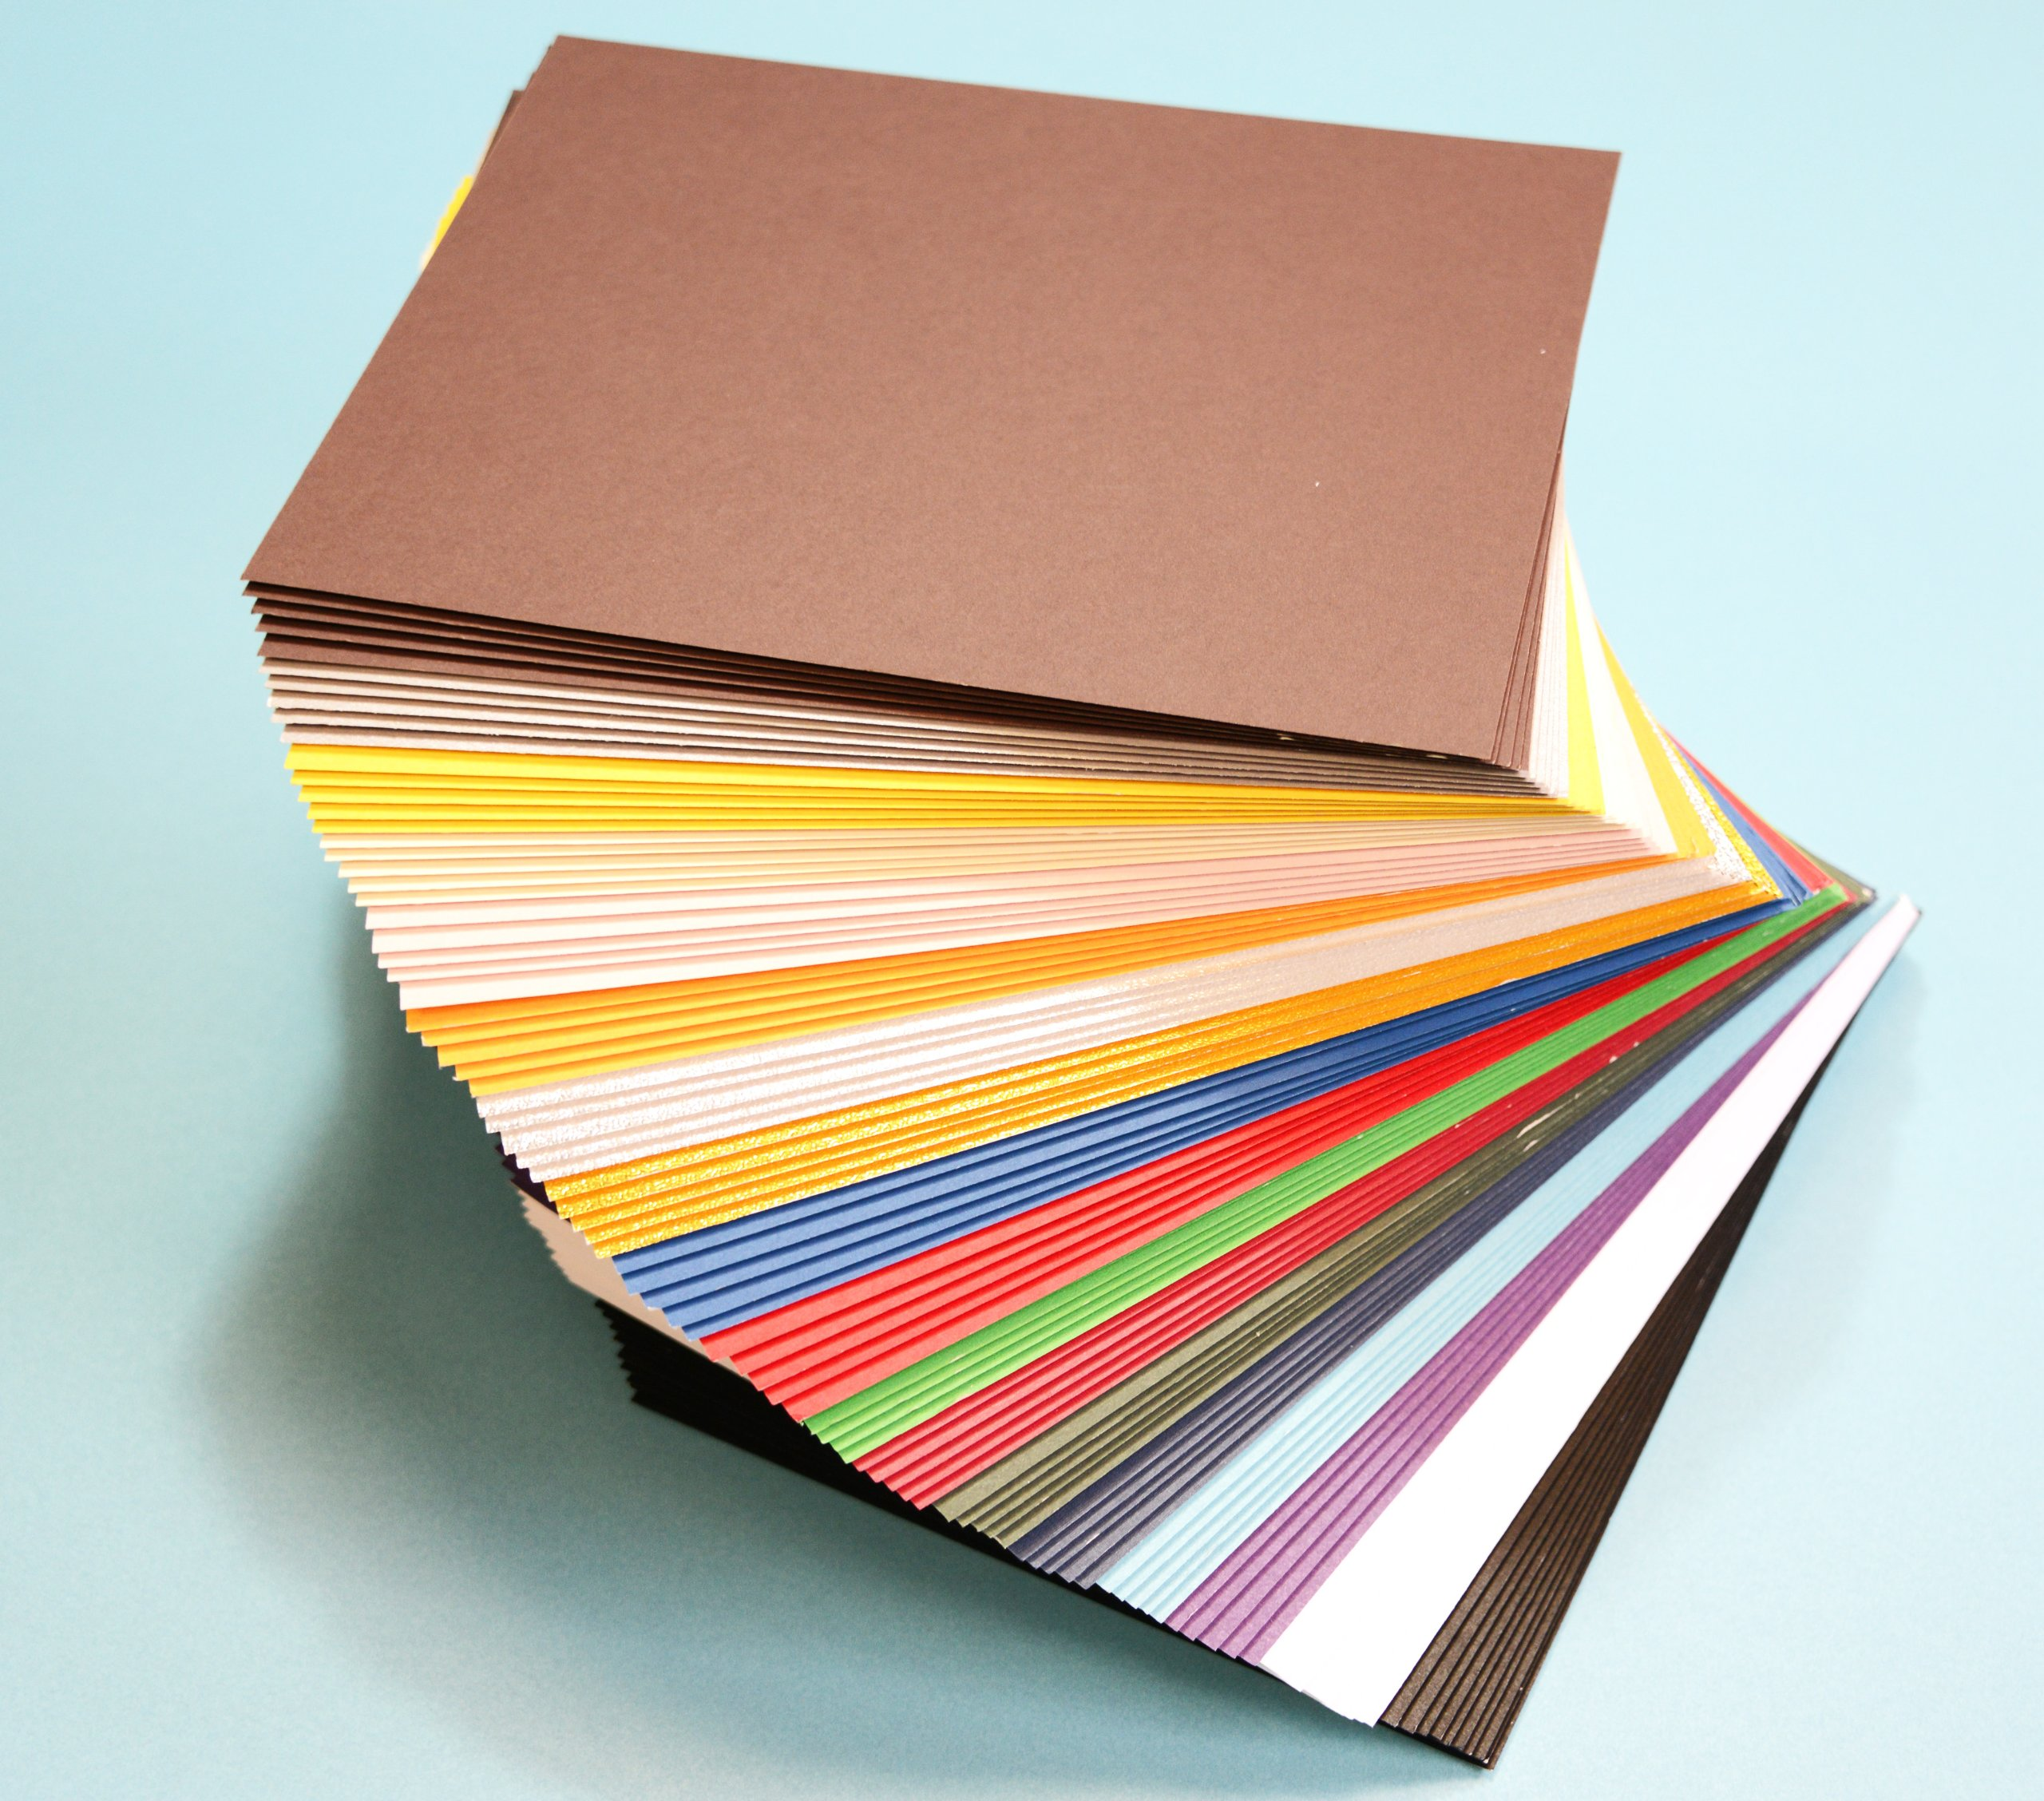 Pack of 100 MIXED COLORS 7.5''x9.5'' UNCUT Mat Board / Matboard Blanks for Framing / Crafting